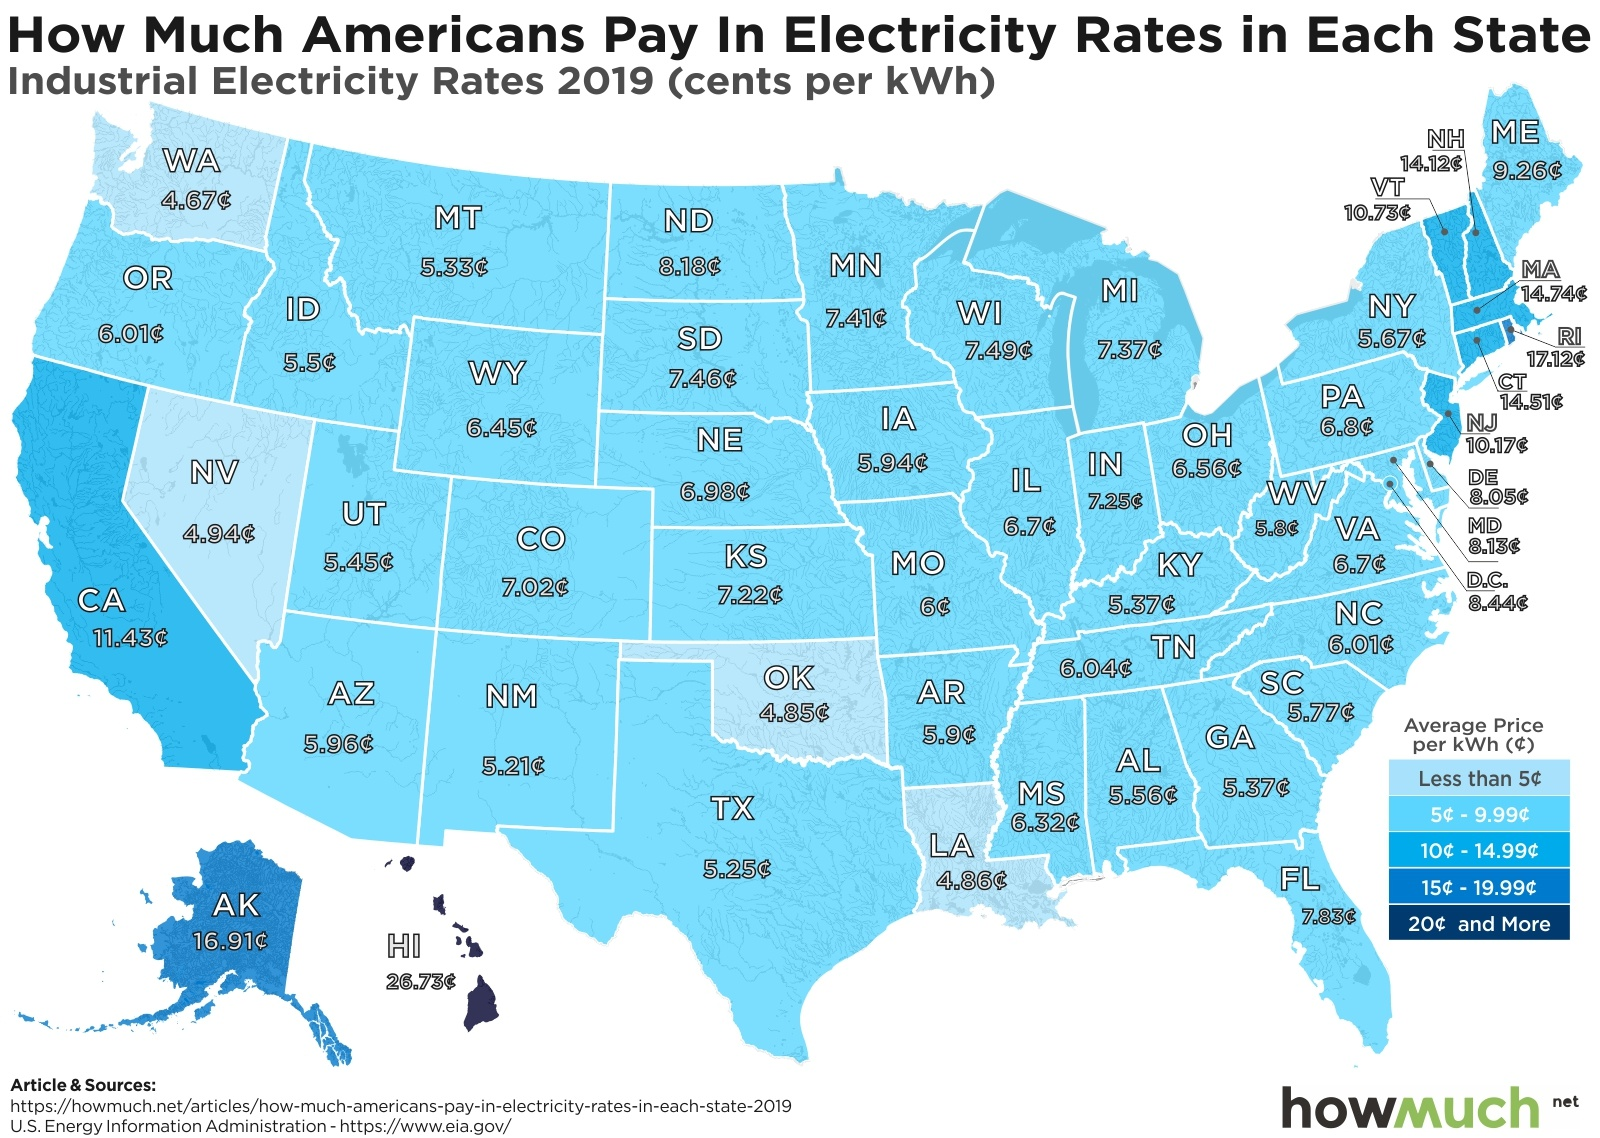 Industrial Electricity Rates by State